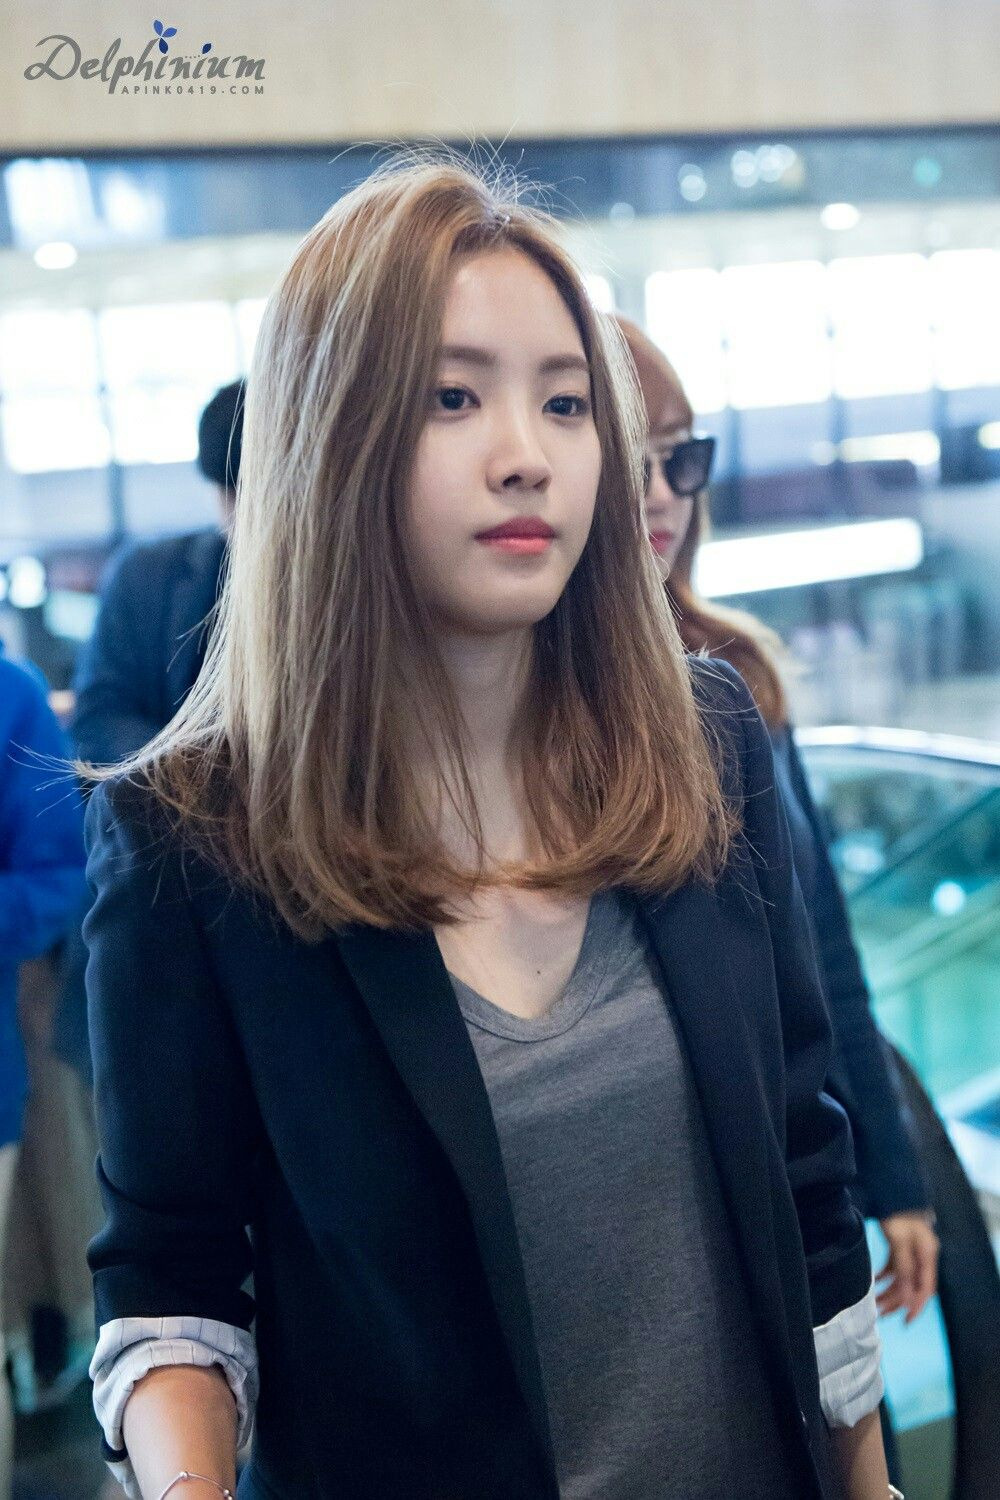 pin by luis gazelle on son naeun in 2019 | hair color asian